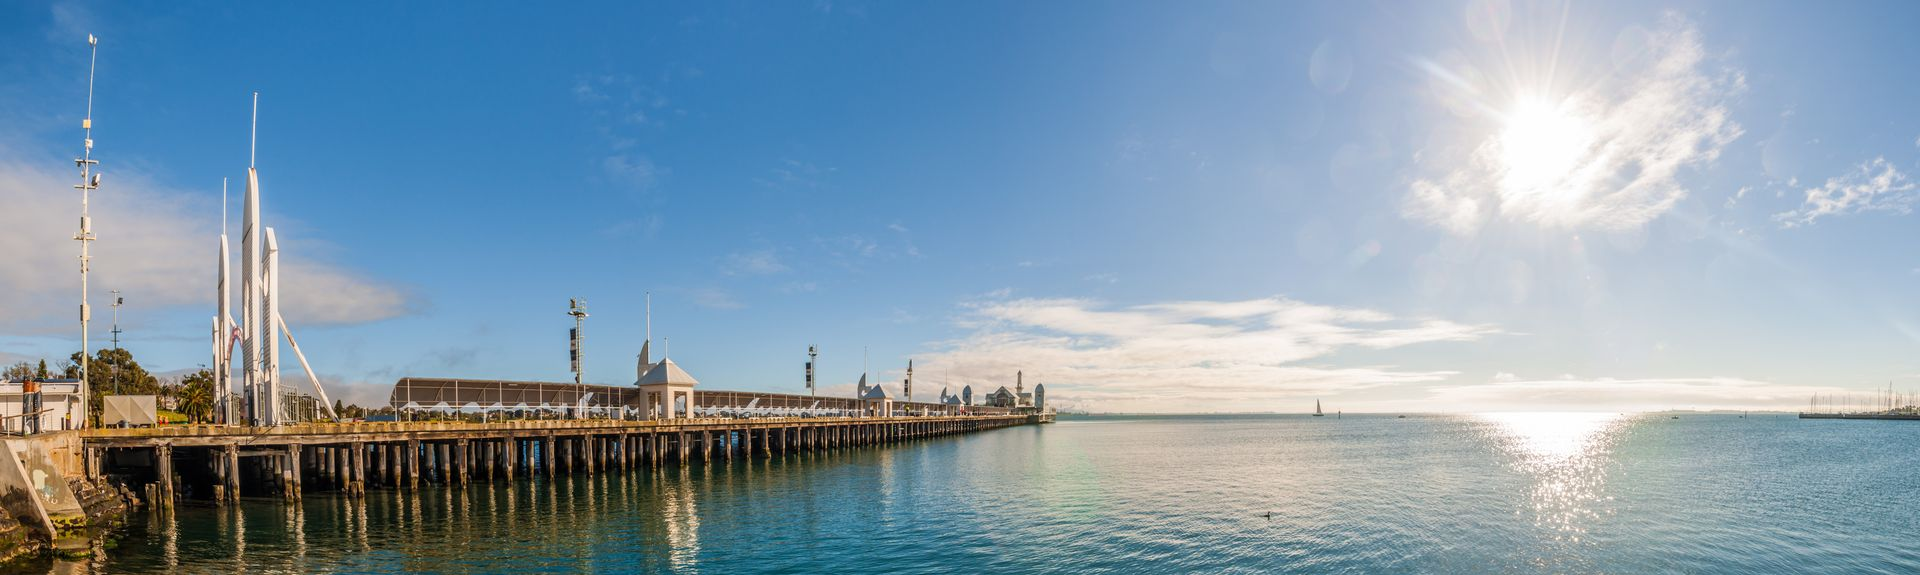 Geelong VIC, Australia